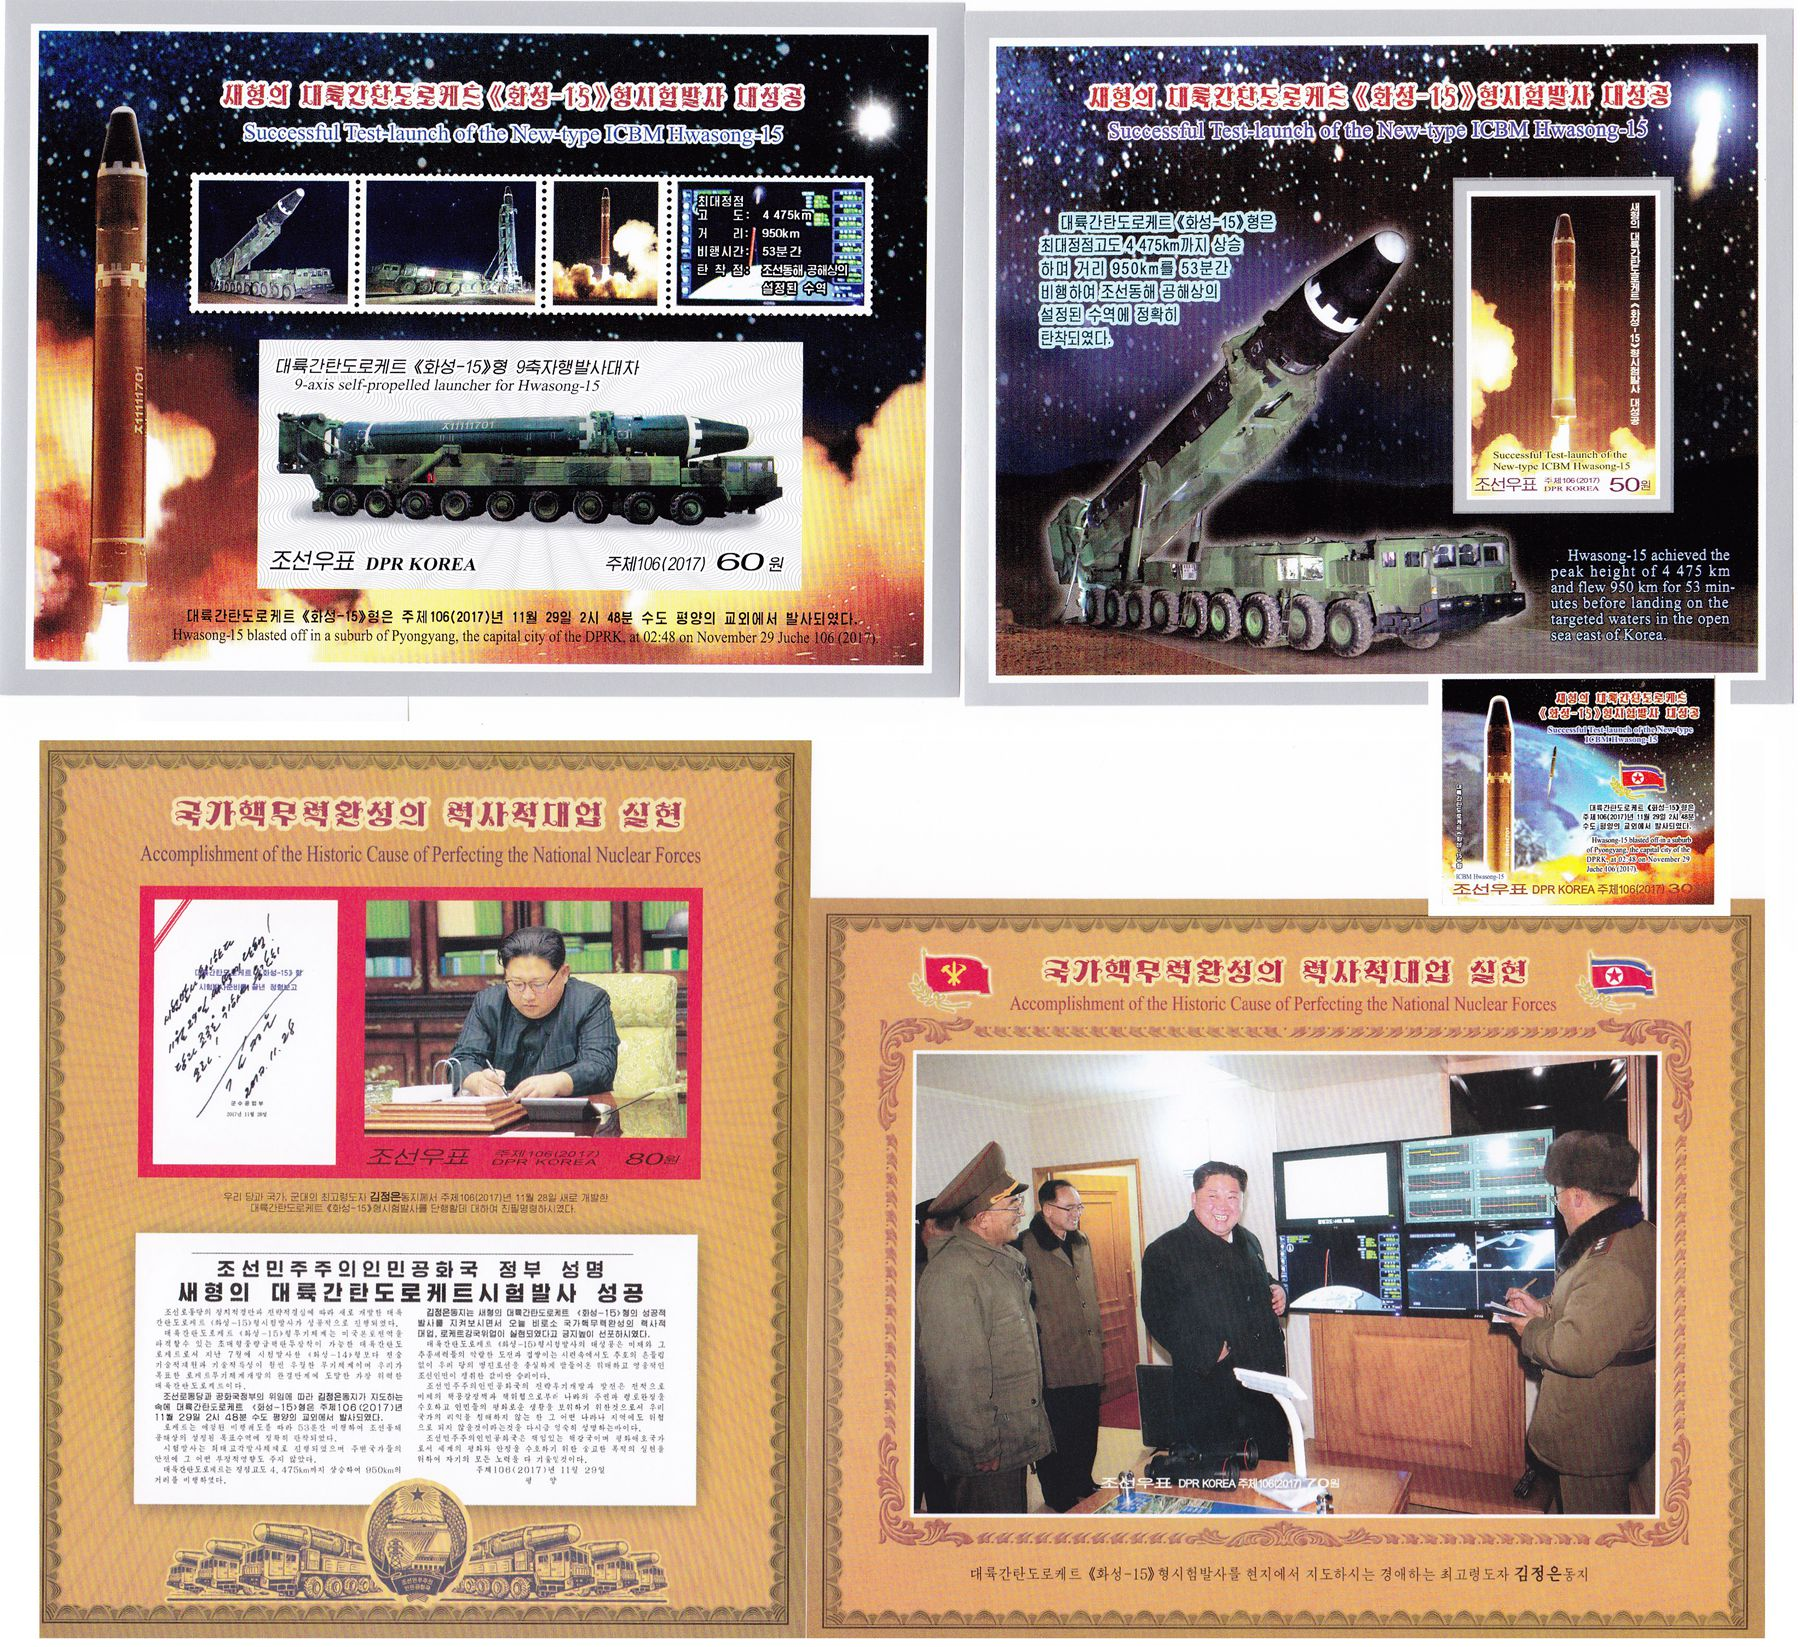 L4409, Korea Hwasong-15 Intercontinental Ballistic Missile, 1 Stamp 4 MS, 2017-11-29 Imperforate